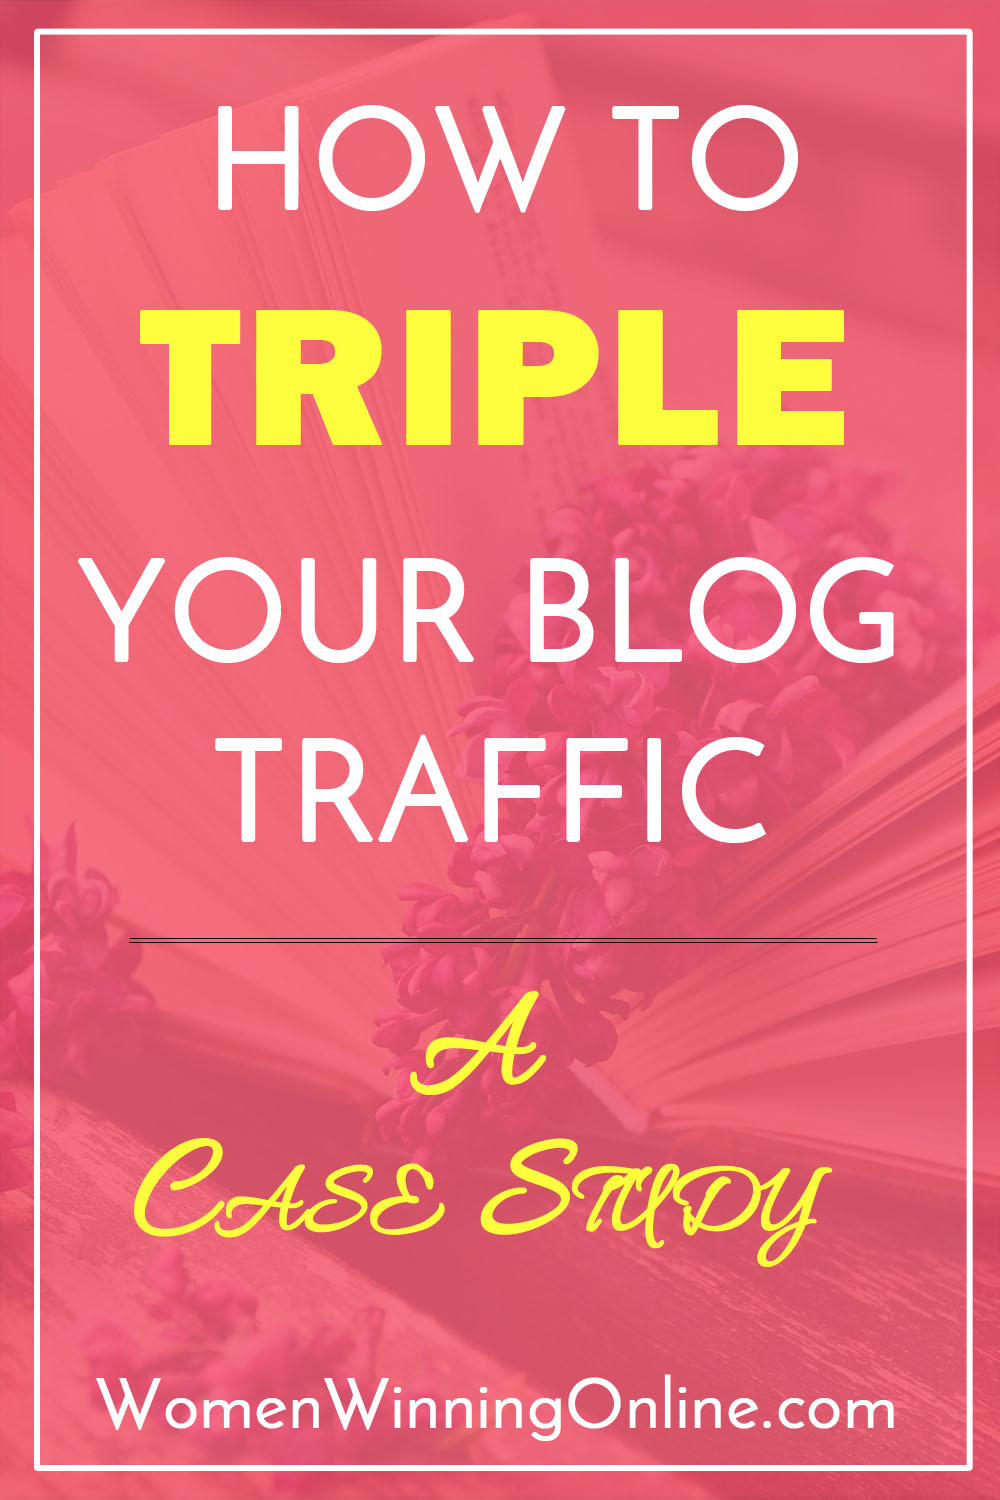 How to triple your blog traffic